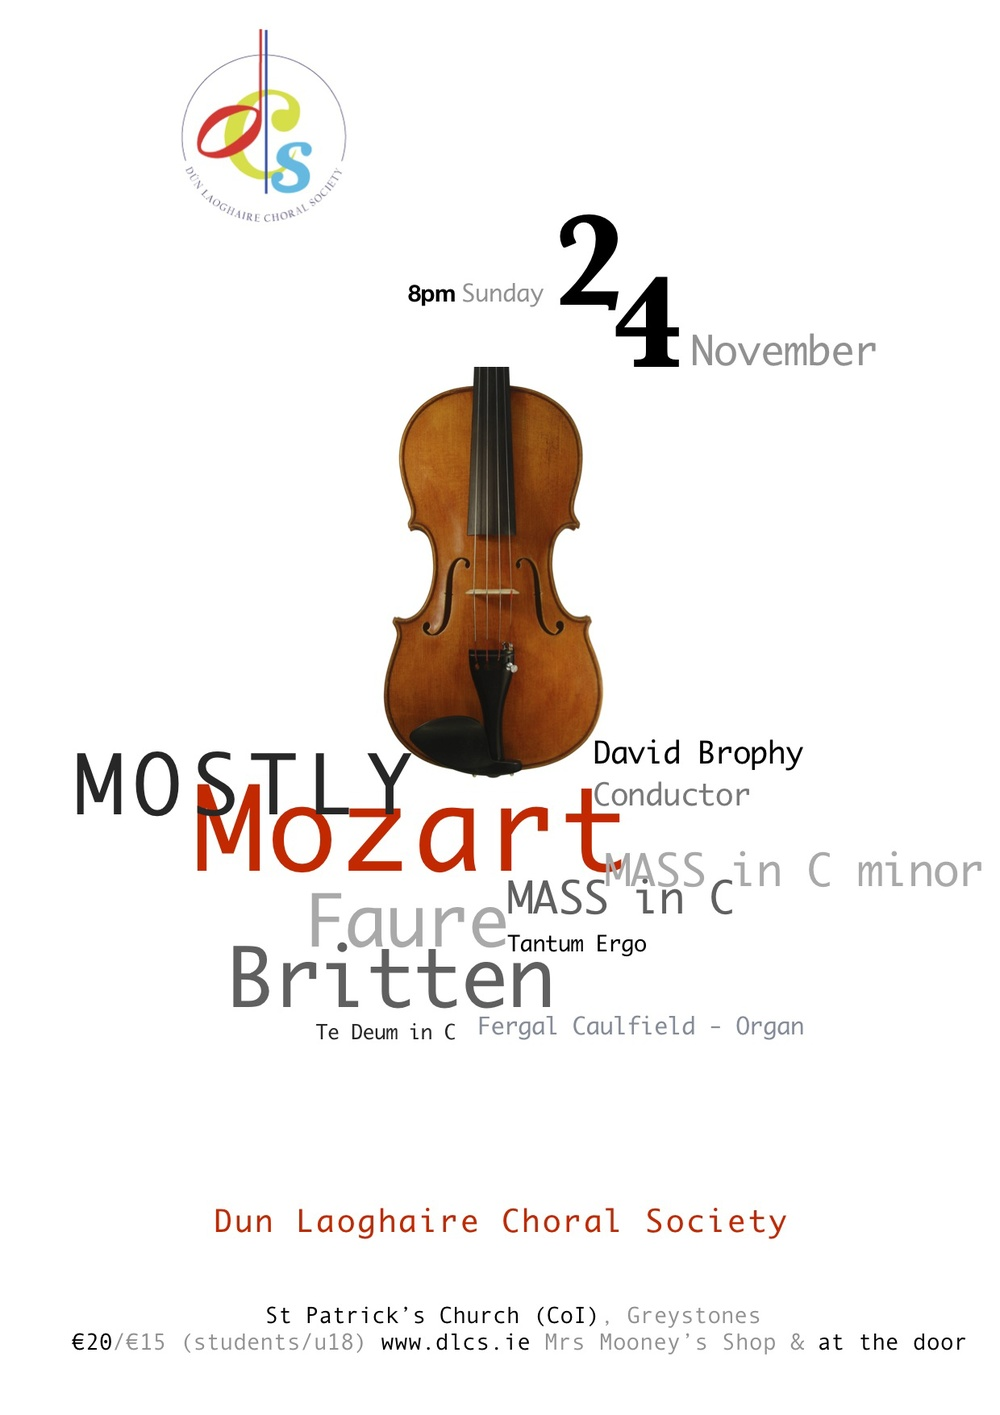 """Mostly Mozart"" Concert by Dun Laoghaire Choral Society, 24 November 2013"